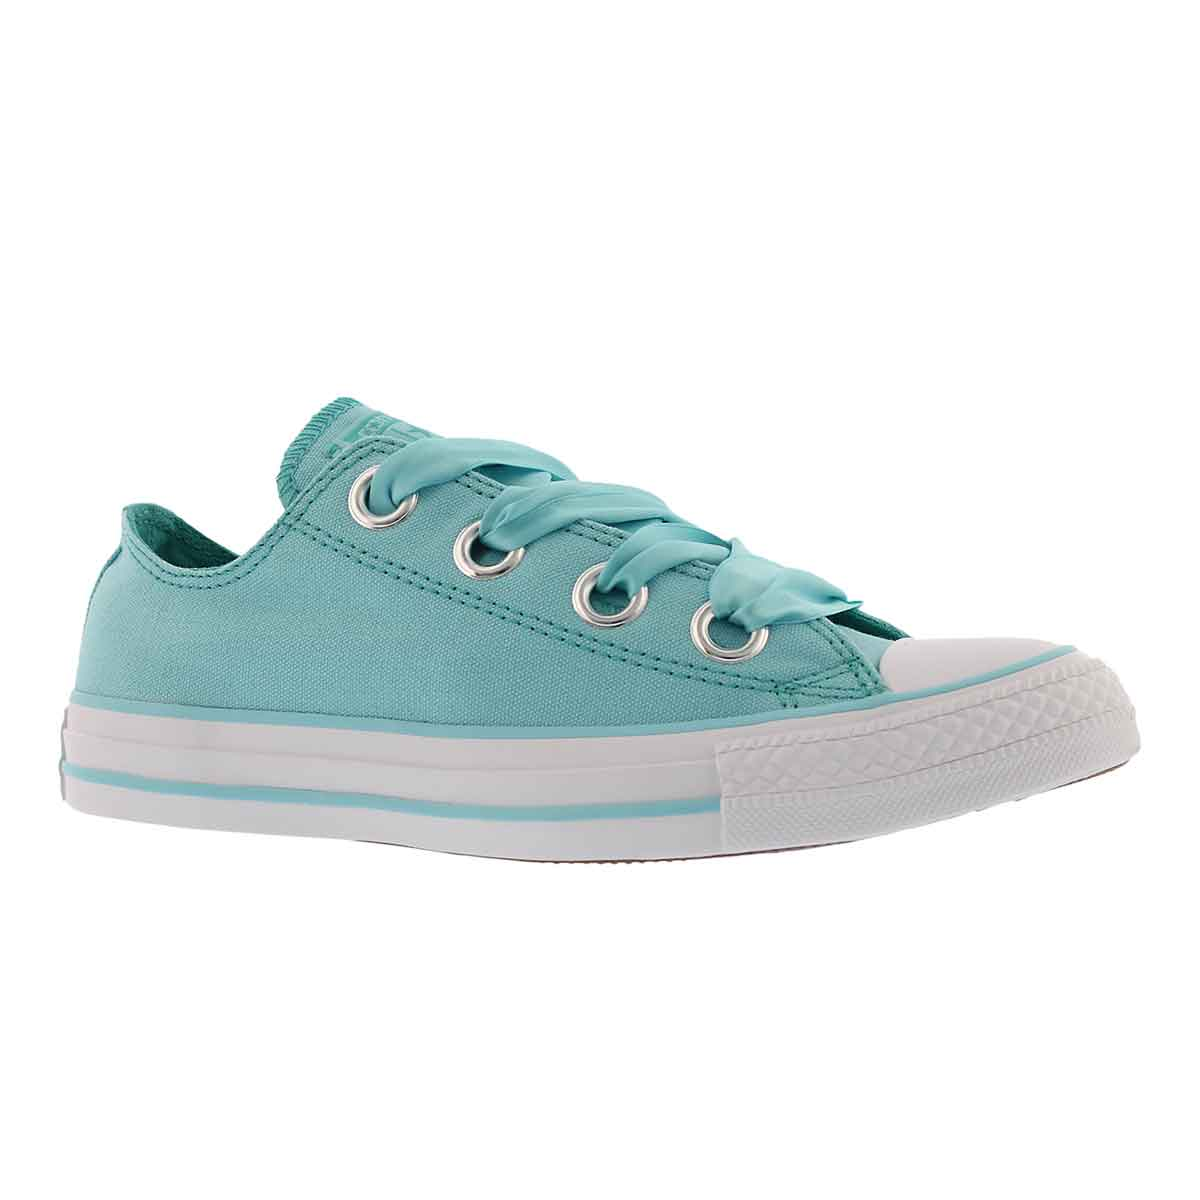 Women's CT ALL STAR BIG EYELETS bleached sneakers